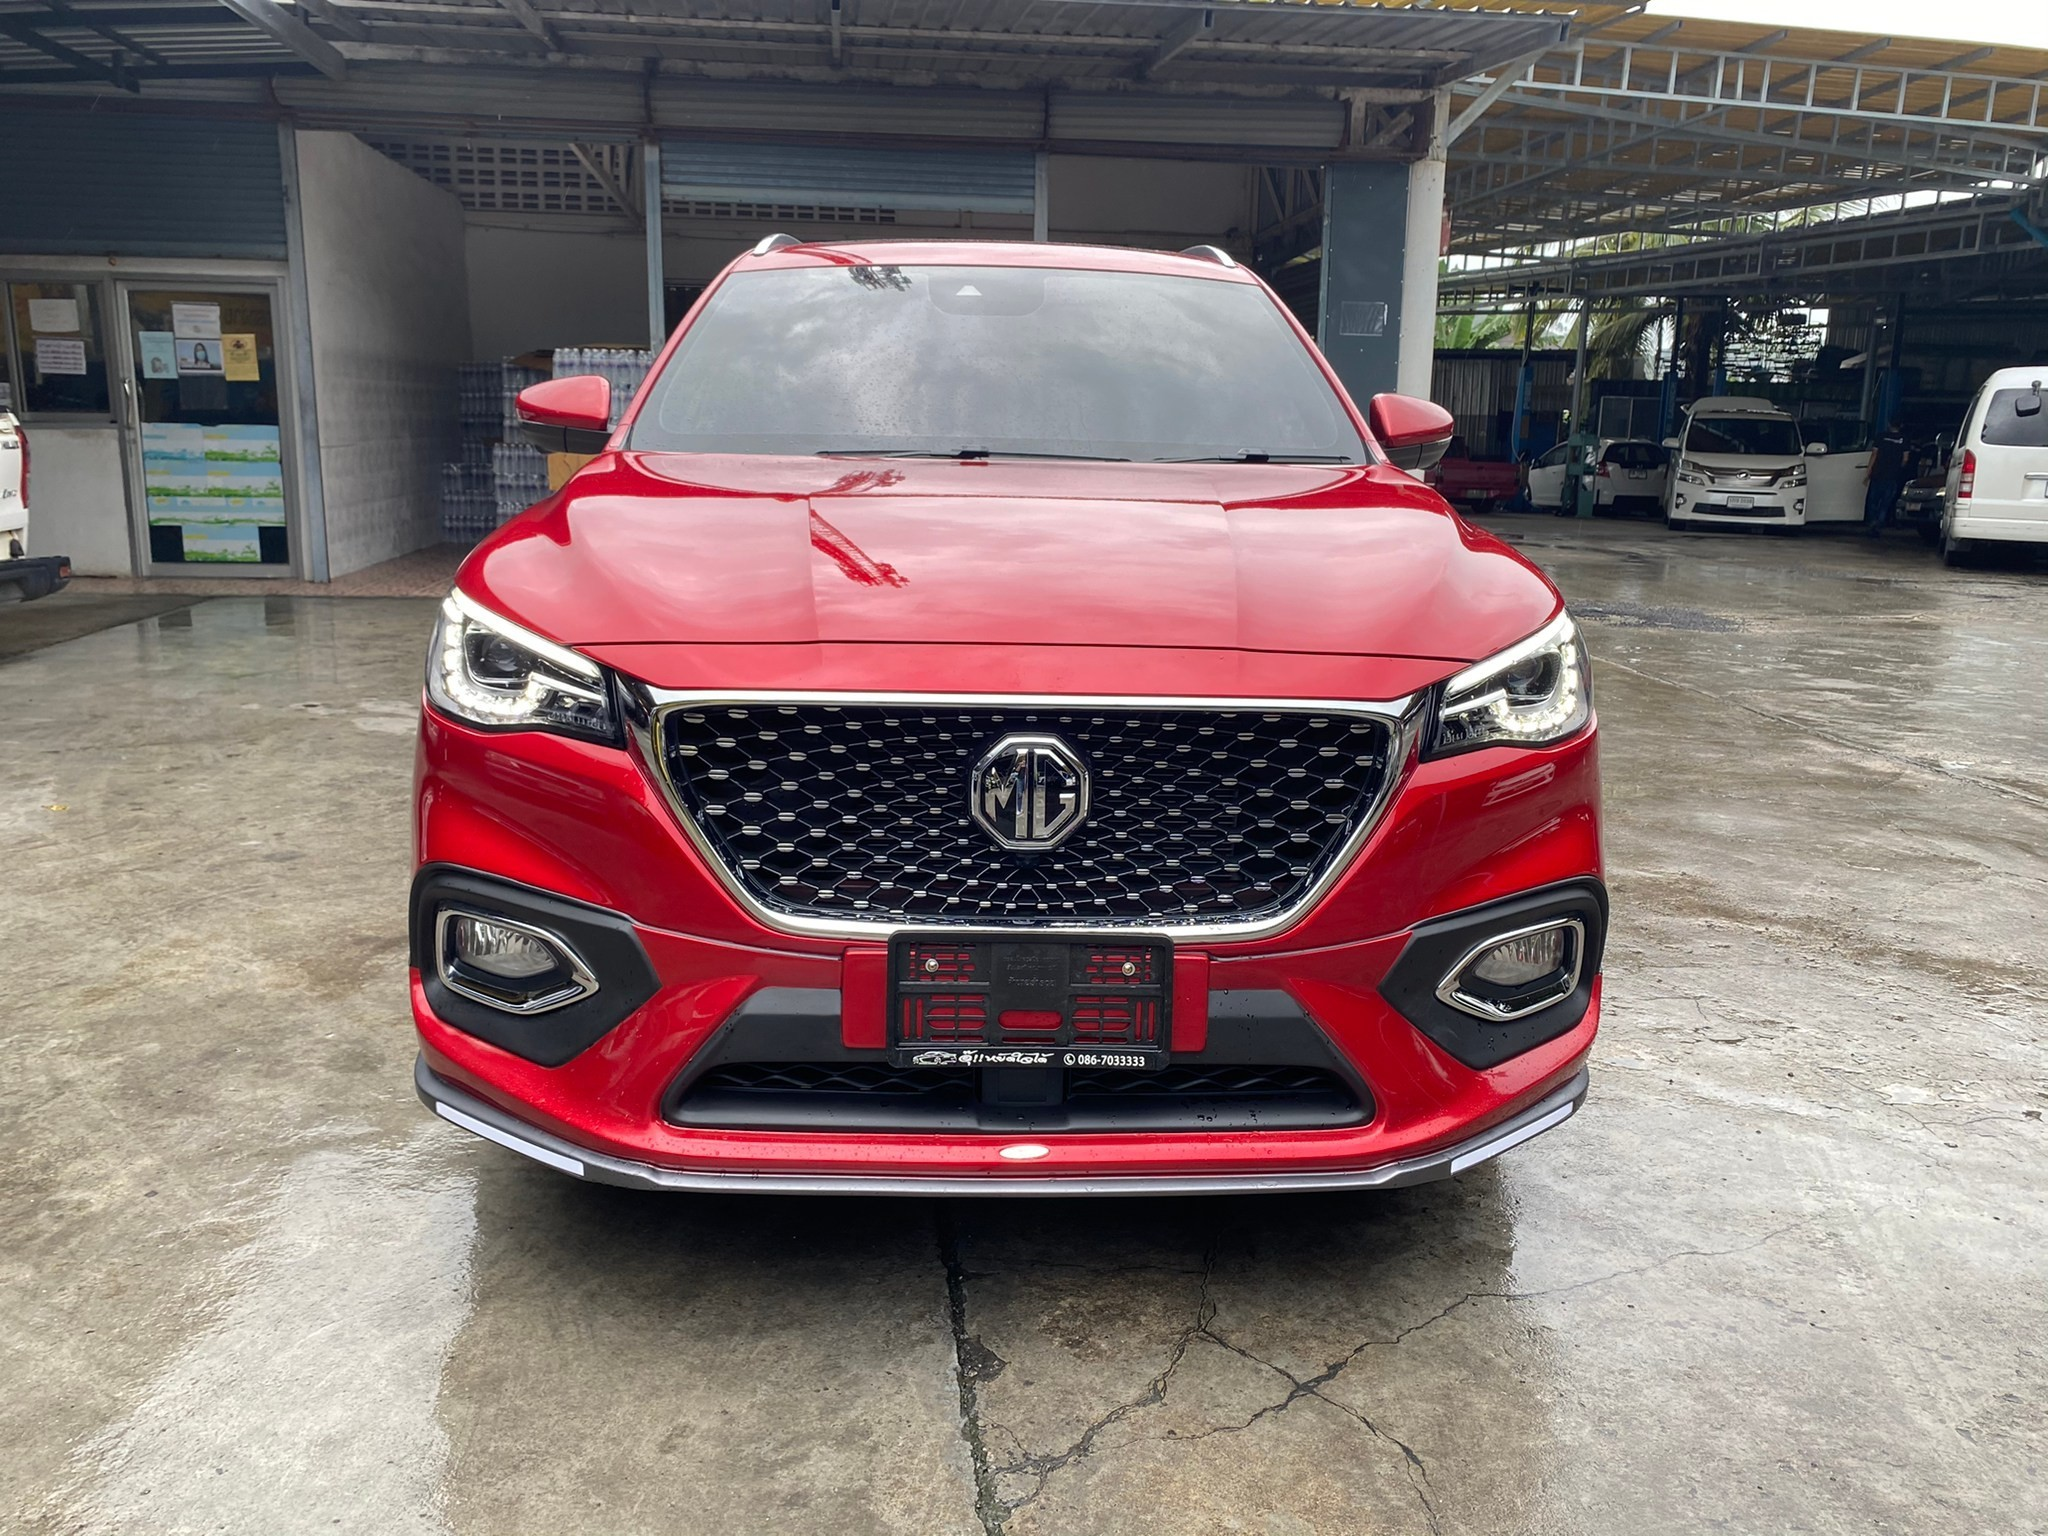 NEW MG HS 1.5 TURBO X SUNROOF AT 2021